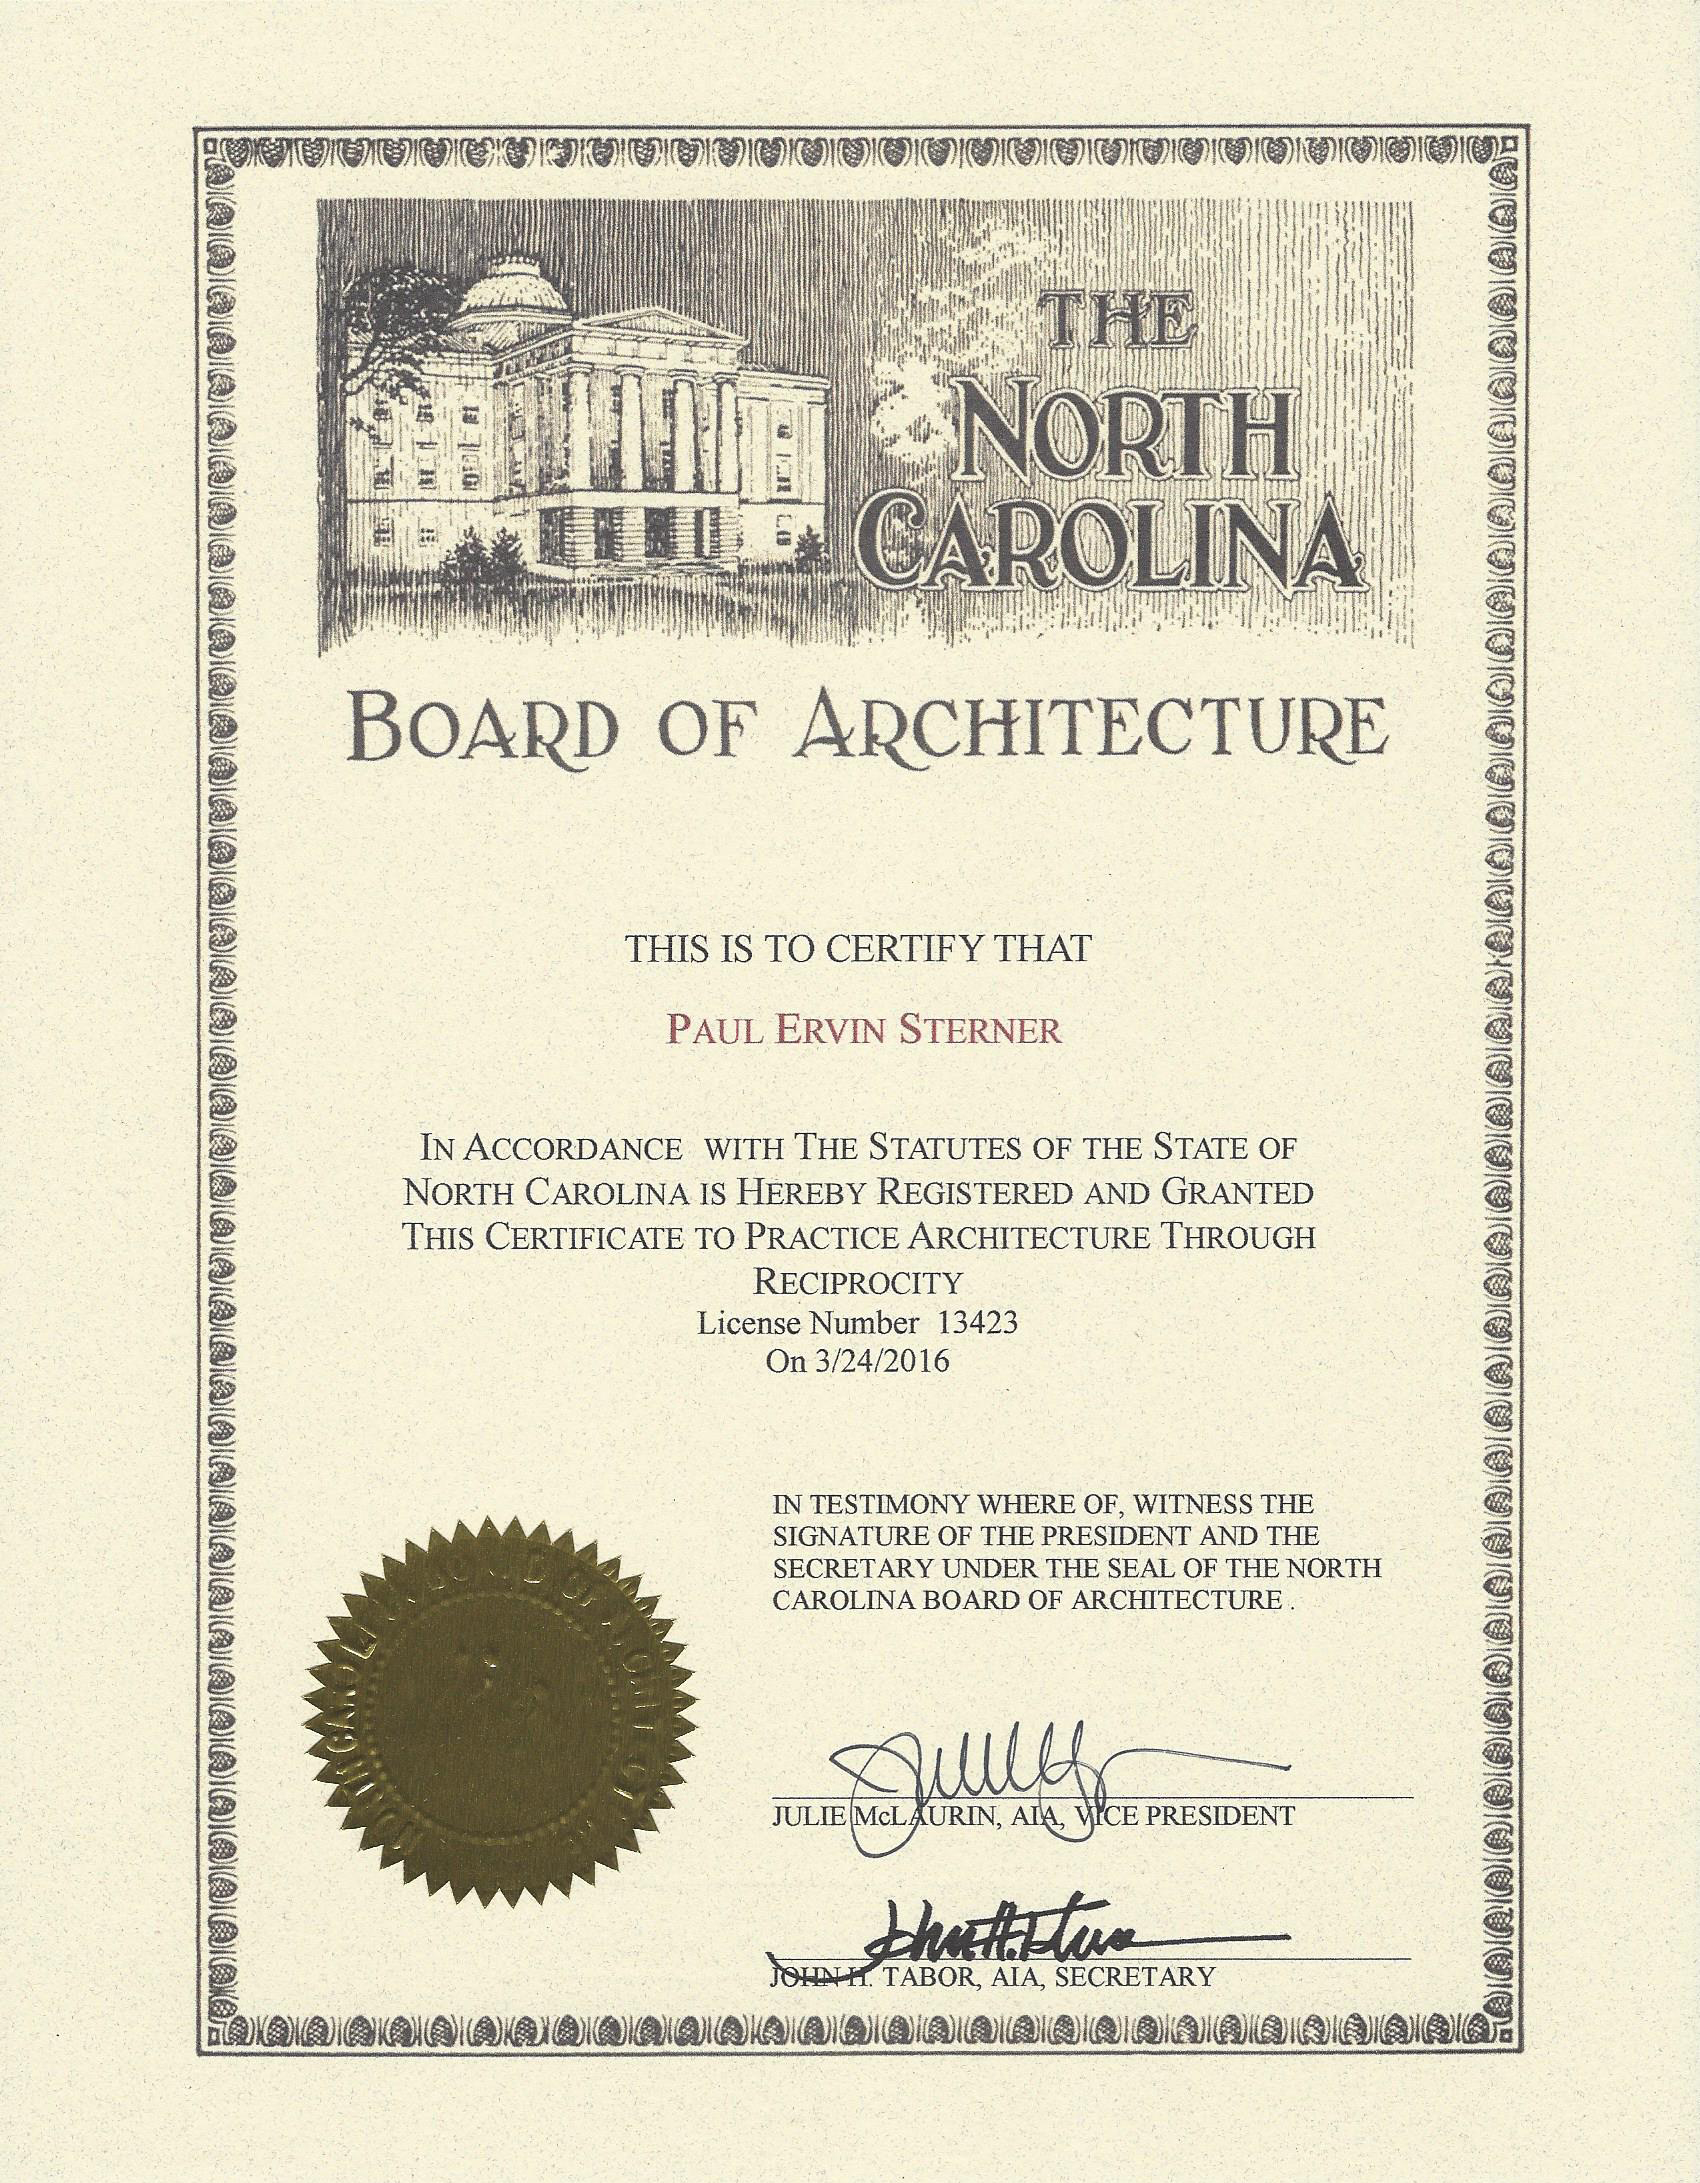 Oculus architects licenses insurance bonding certifications registered architect north carolina certification xflitez Image collections